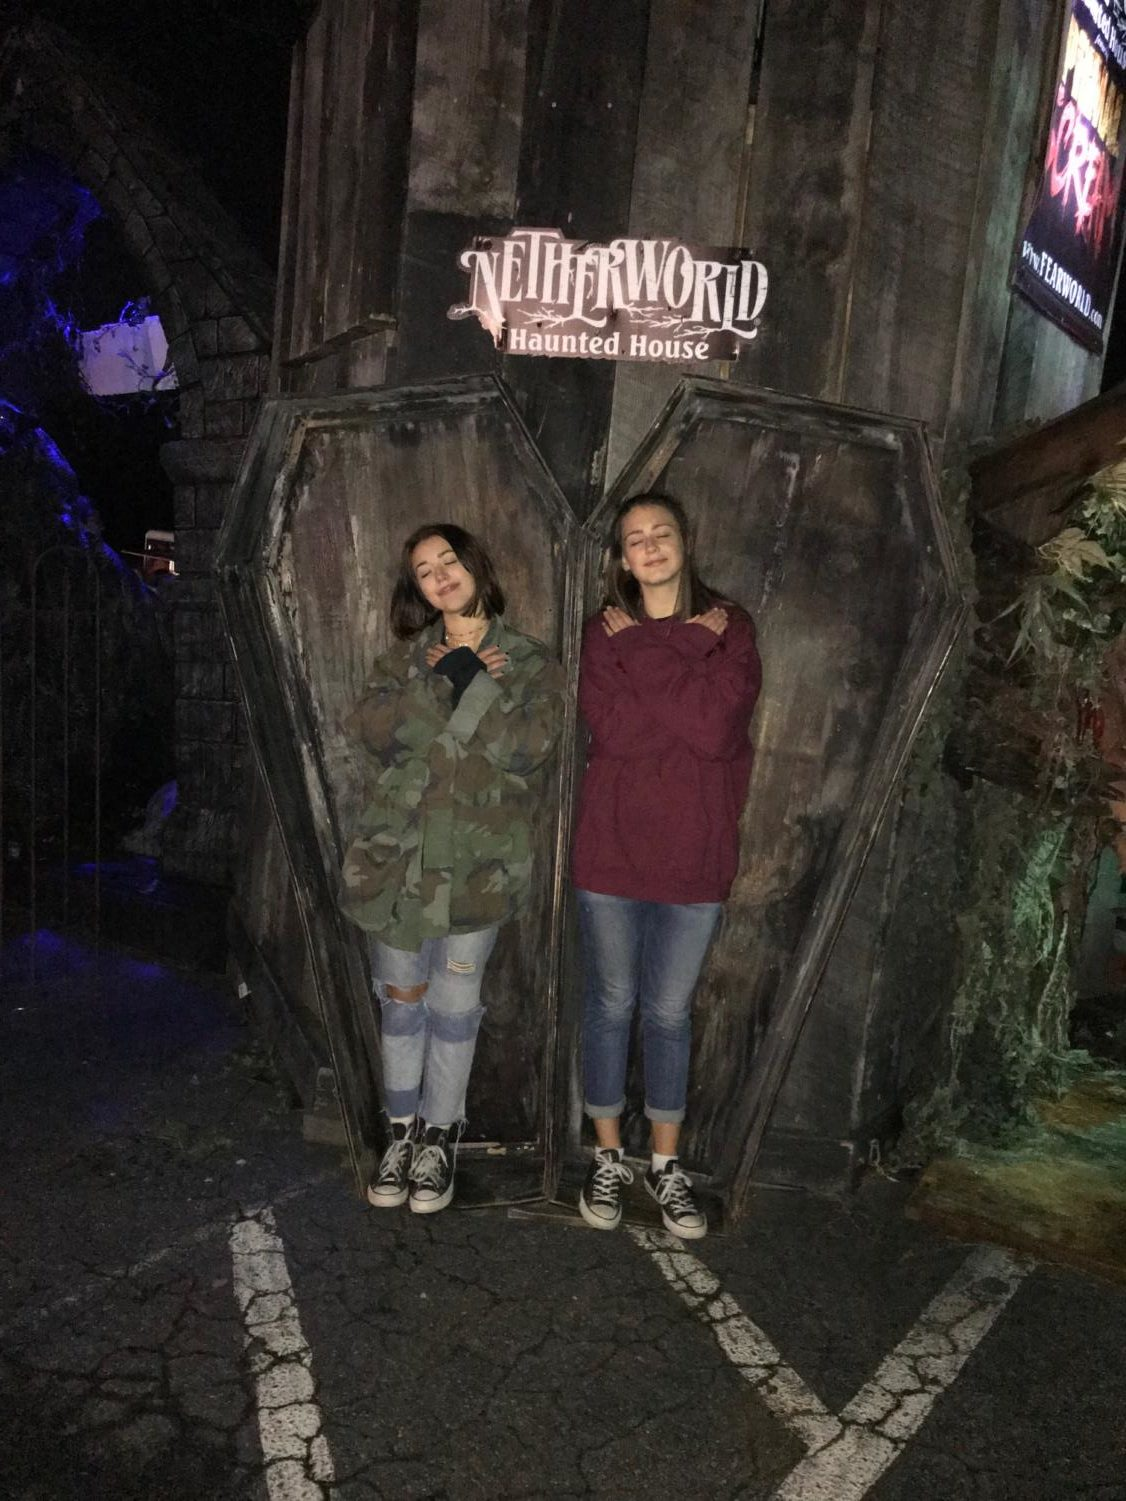 Junior Kara Harbin and sophomore Sammy Post visit Netherworld.